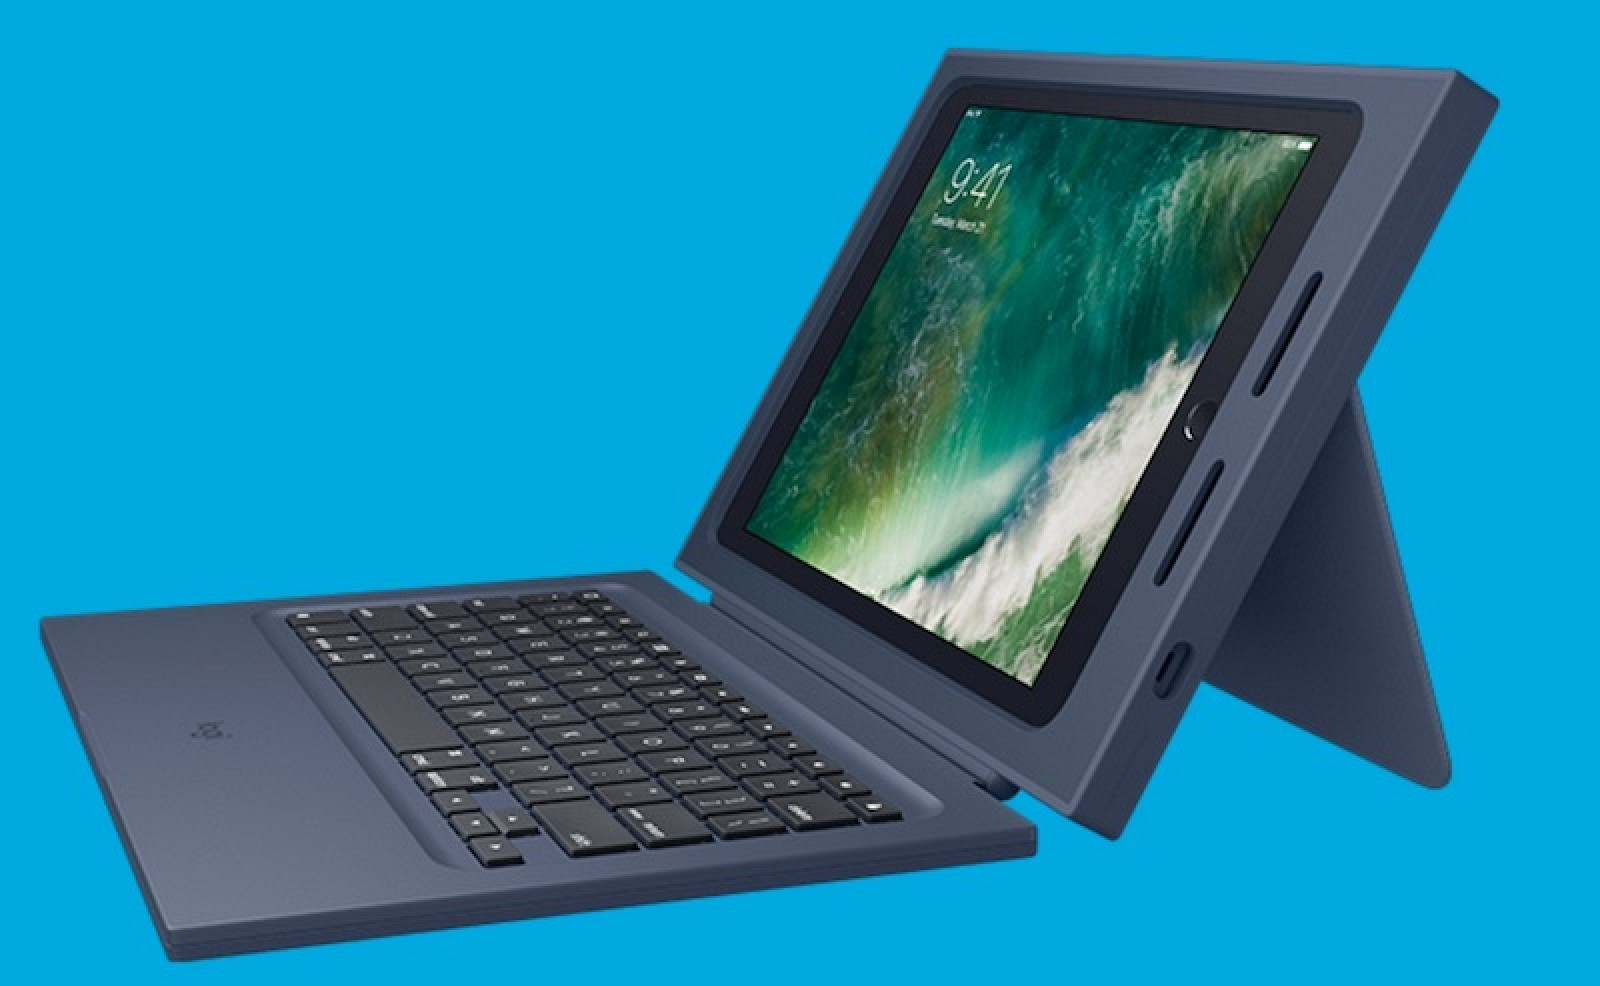 new style e39b1 45e08 Logitech Debuts Education-Focused 'Rugged Combo' Case for New 9.7 ...